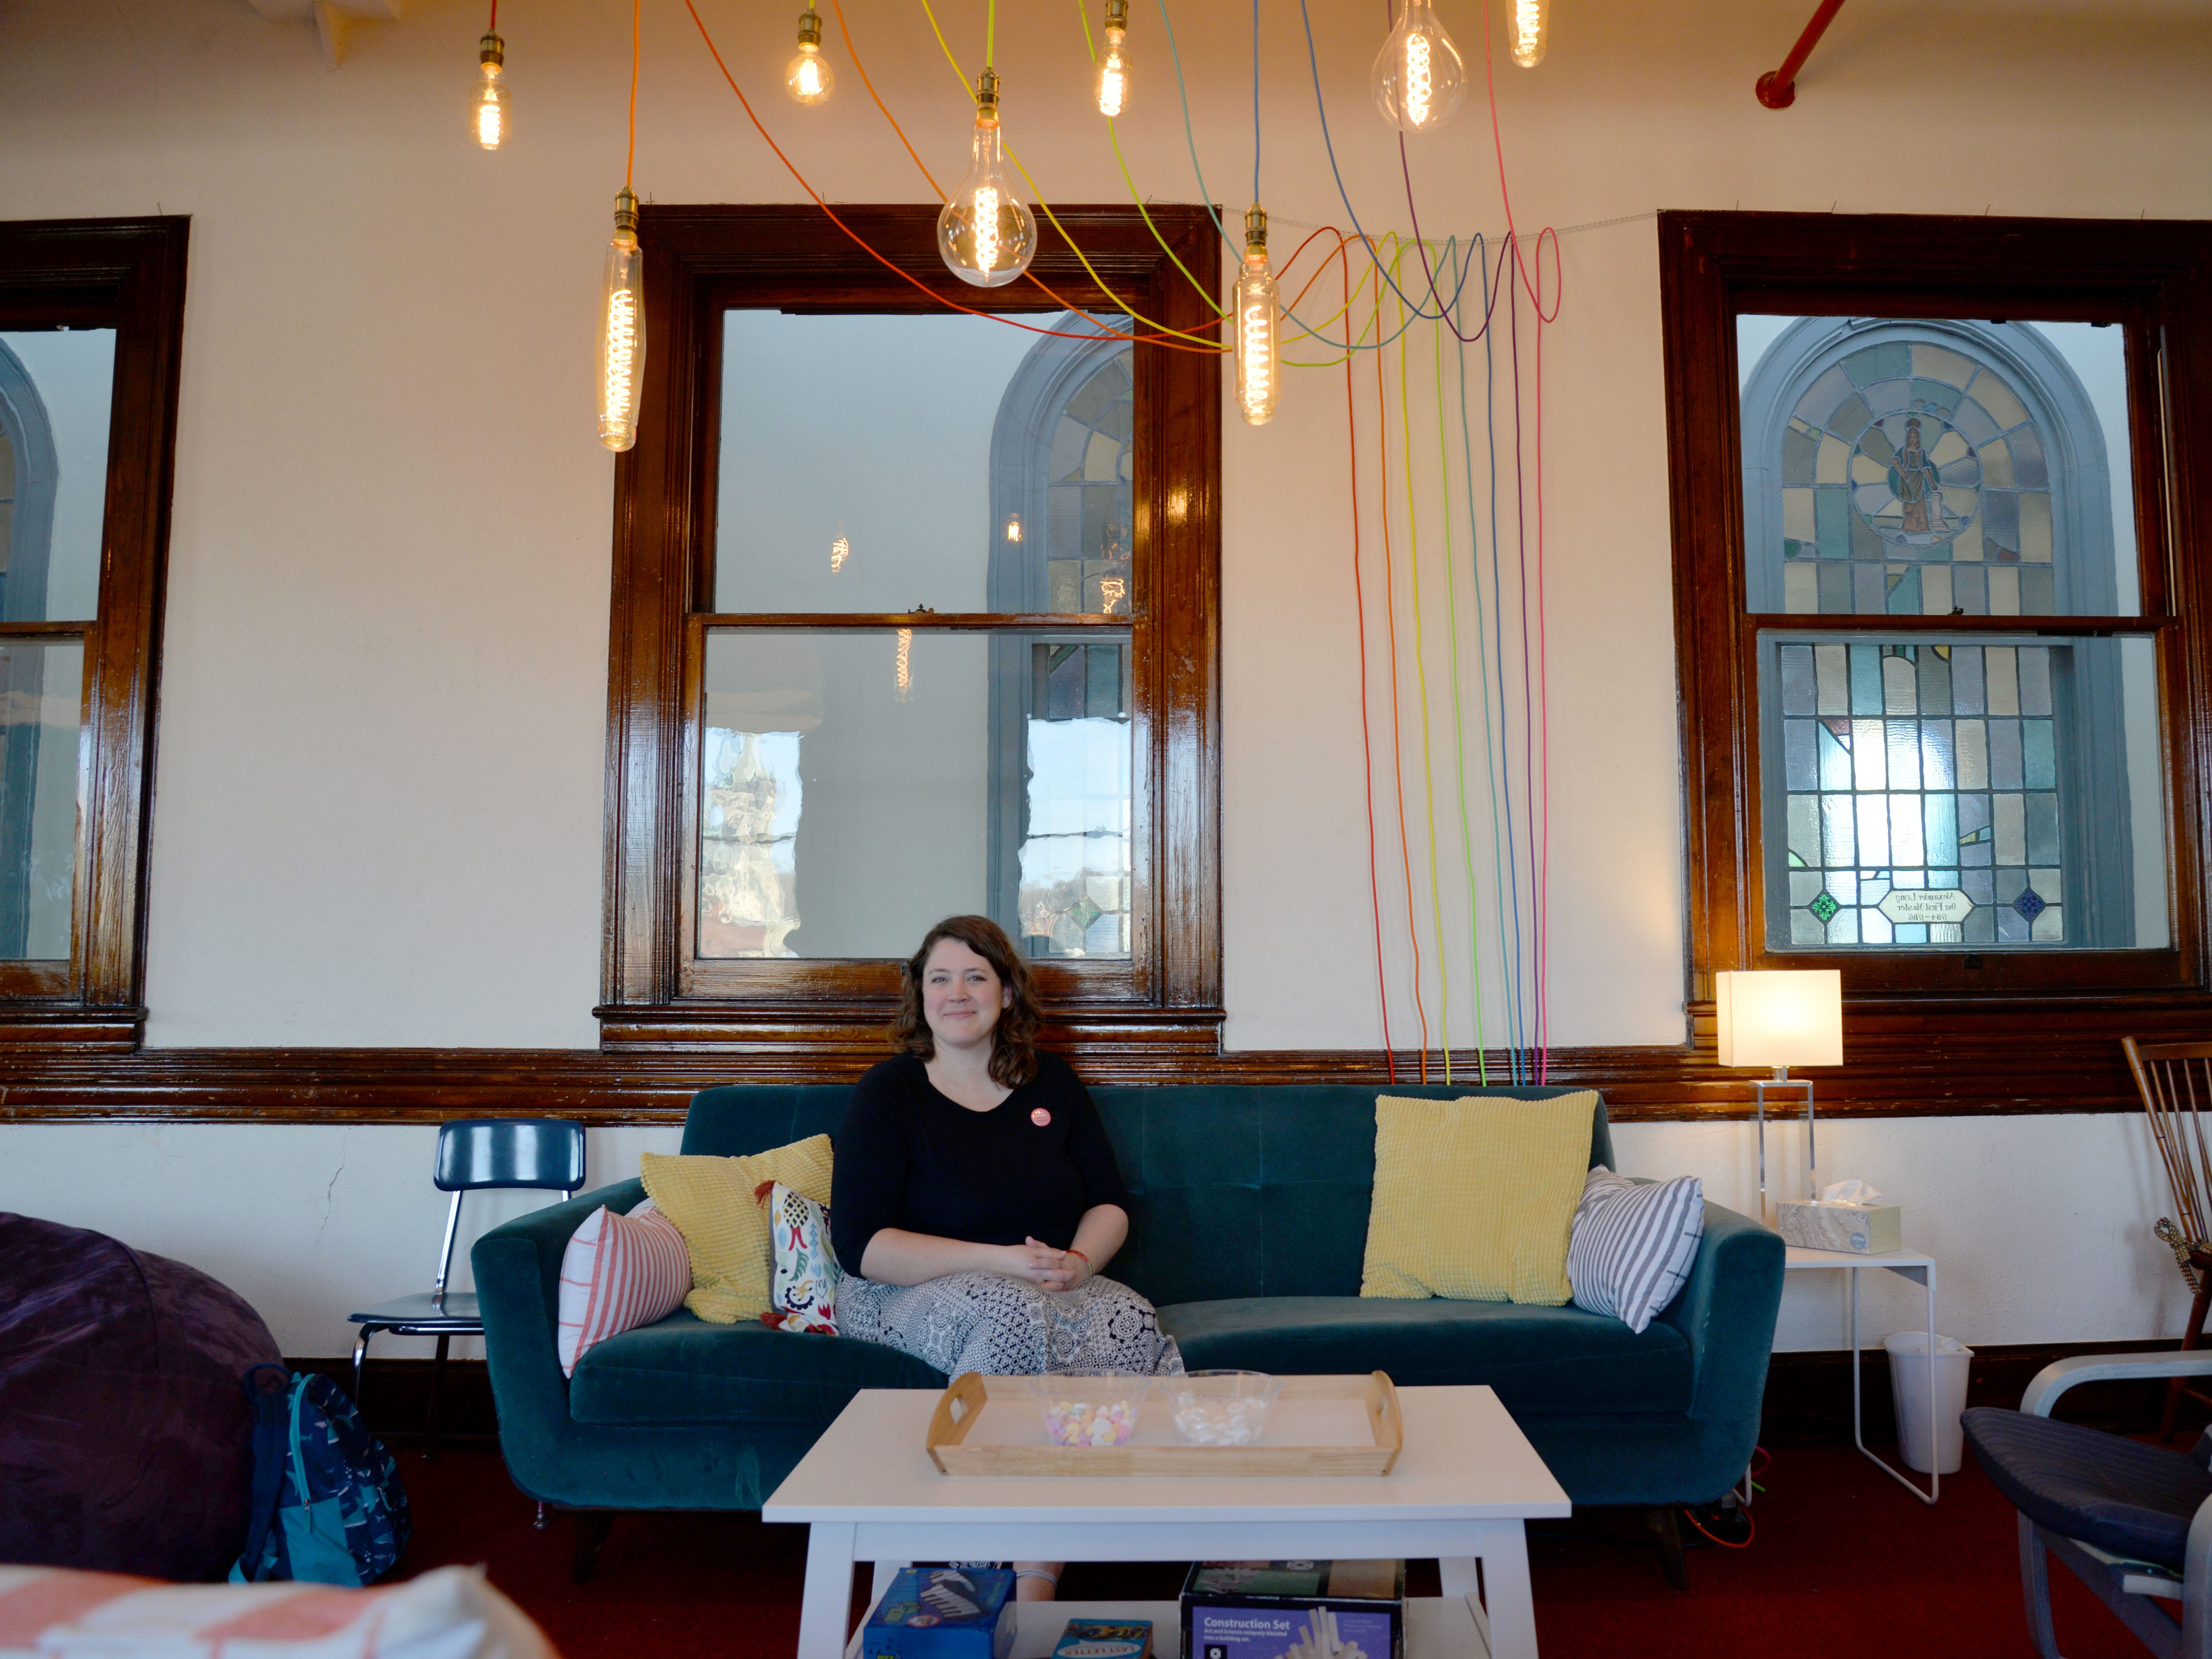 Executive Director Emily Sproul of the Shenandoah LGBTQ Center. The center has found a permanent home in Staunton's Masonic Building.